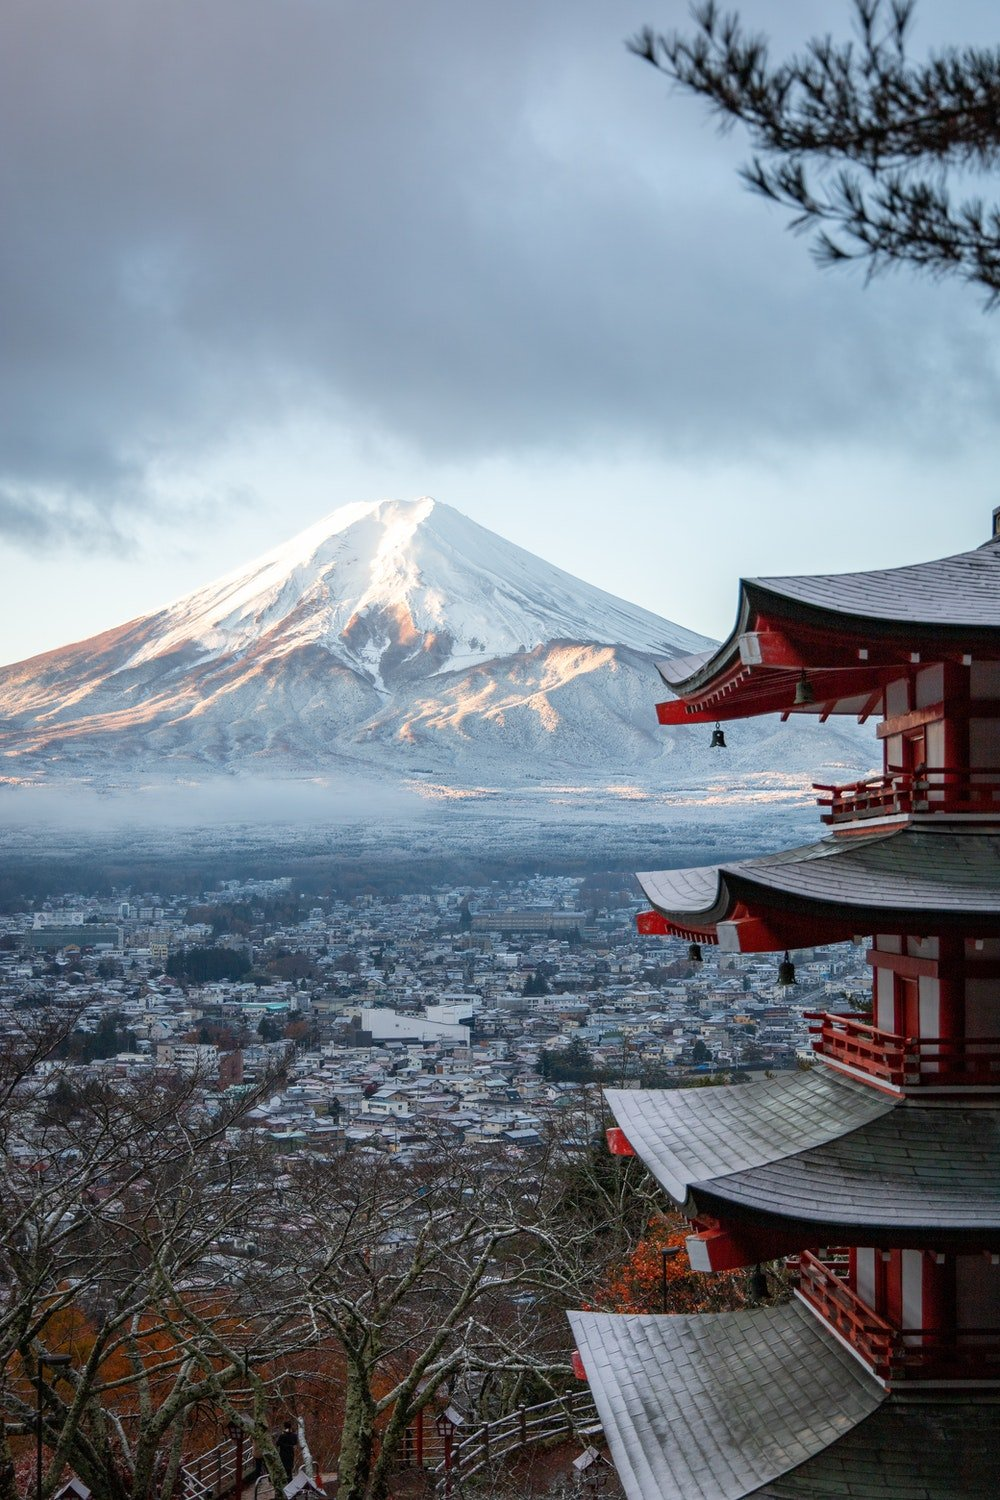 The view of mount Fuji in Japan